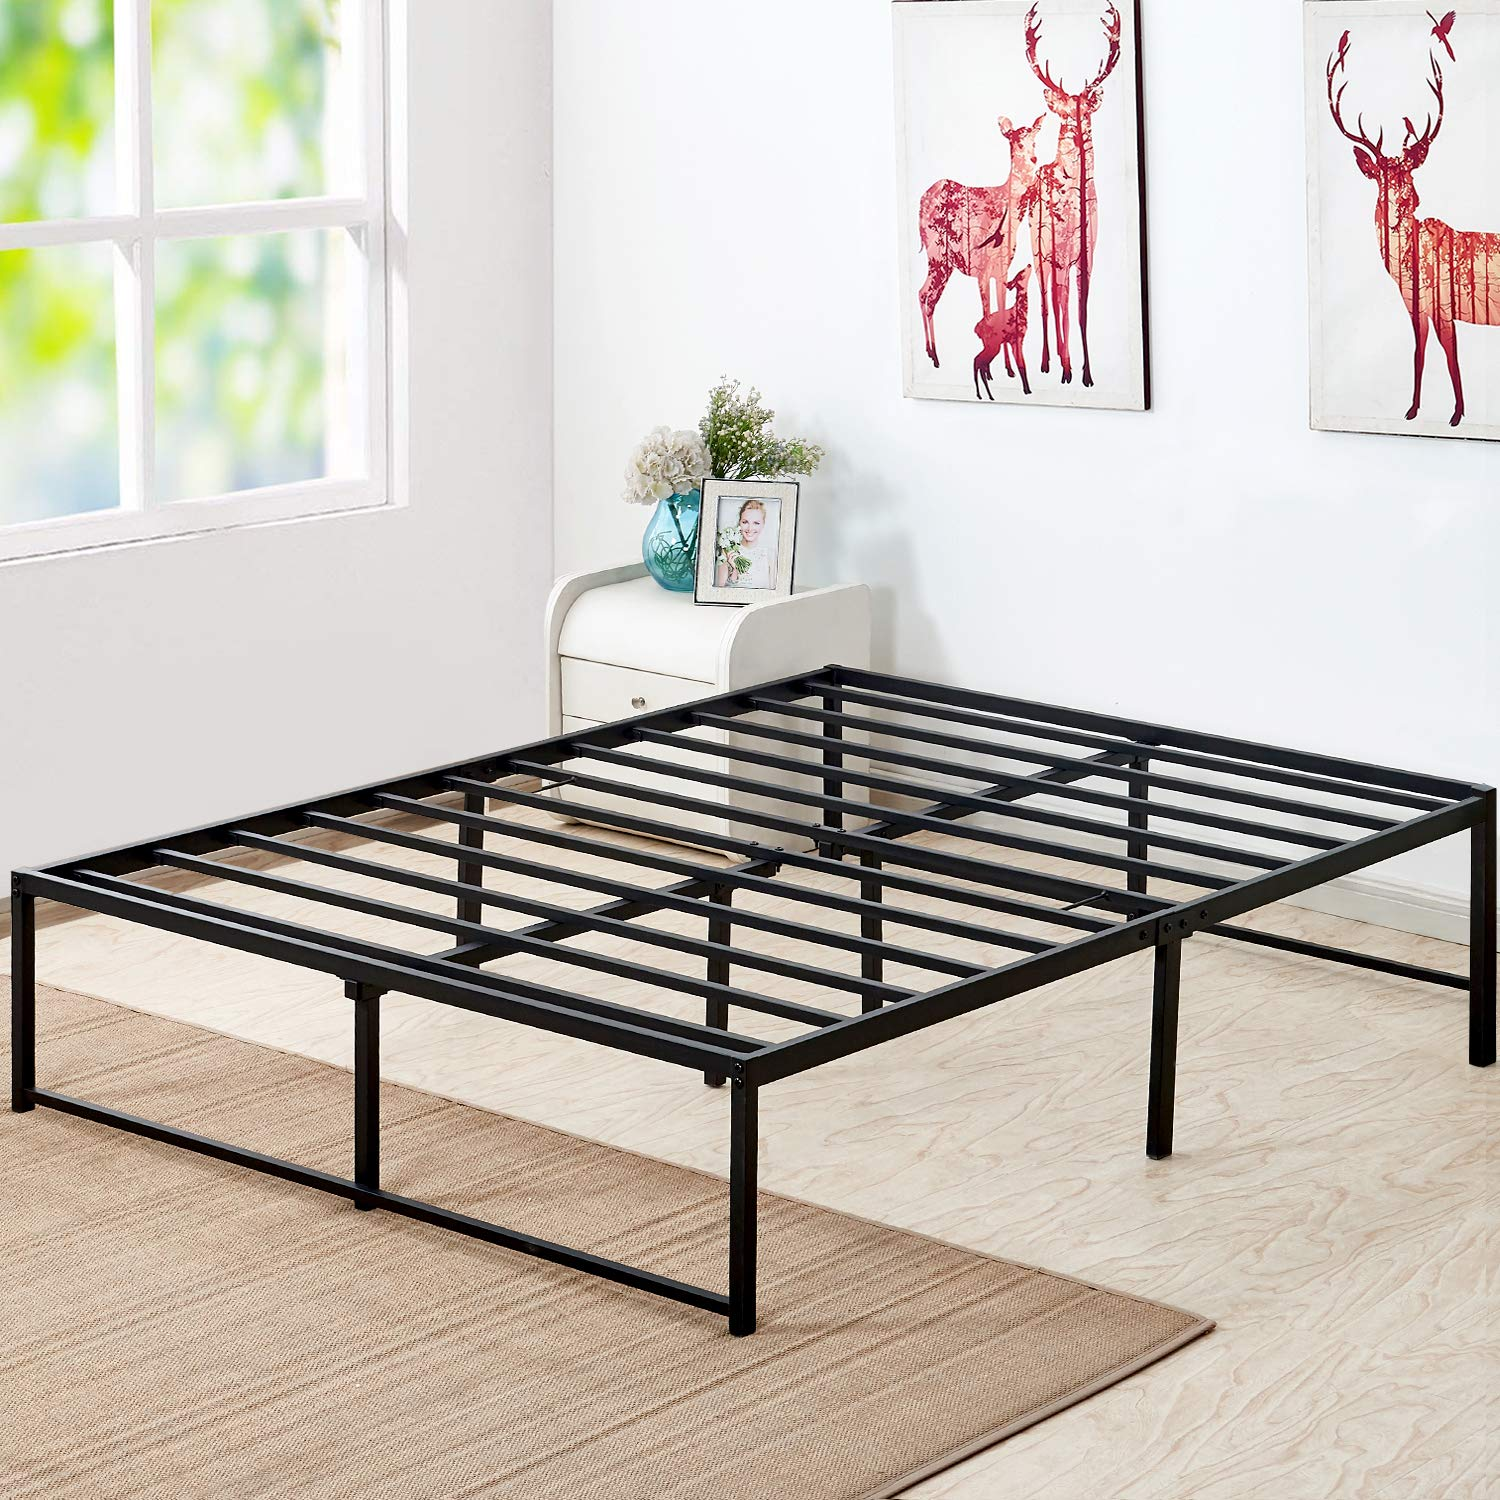 VECELO 14 Inch Platform Bed Frame/Mattress Foundation/No No Box Spring Needed/Steel Slat Support (Queen Size), Black by VECELO